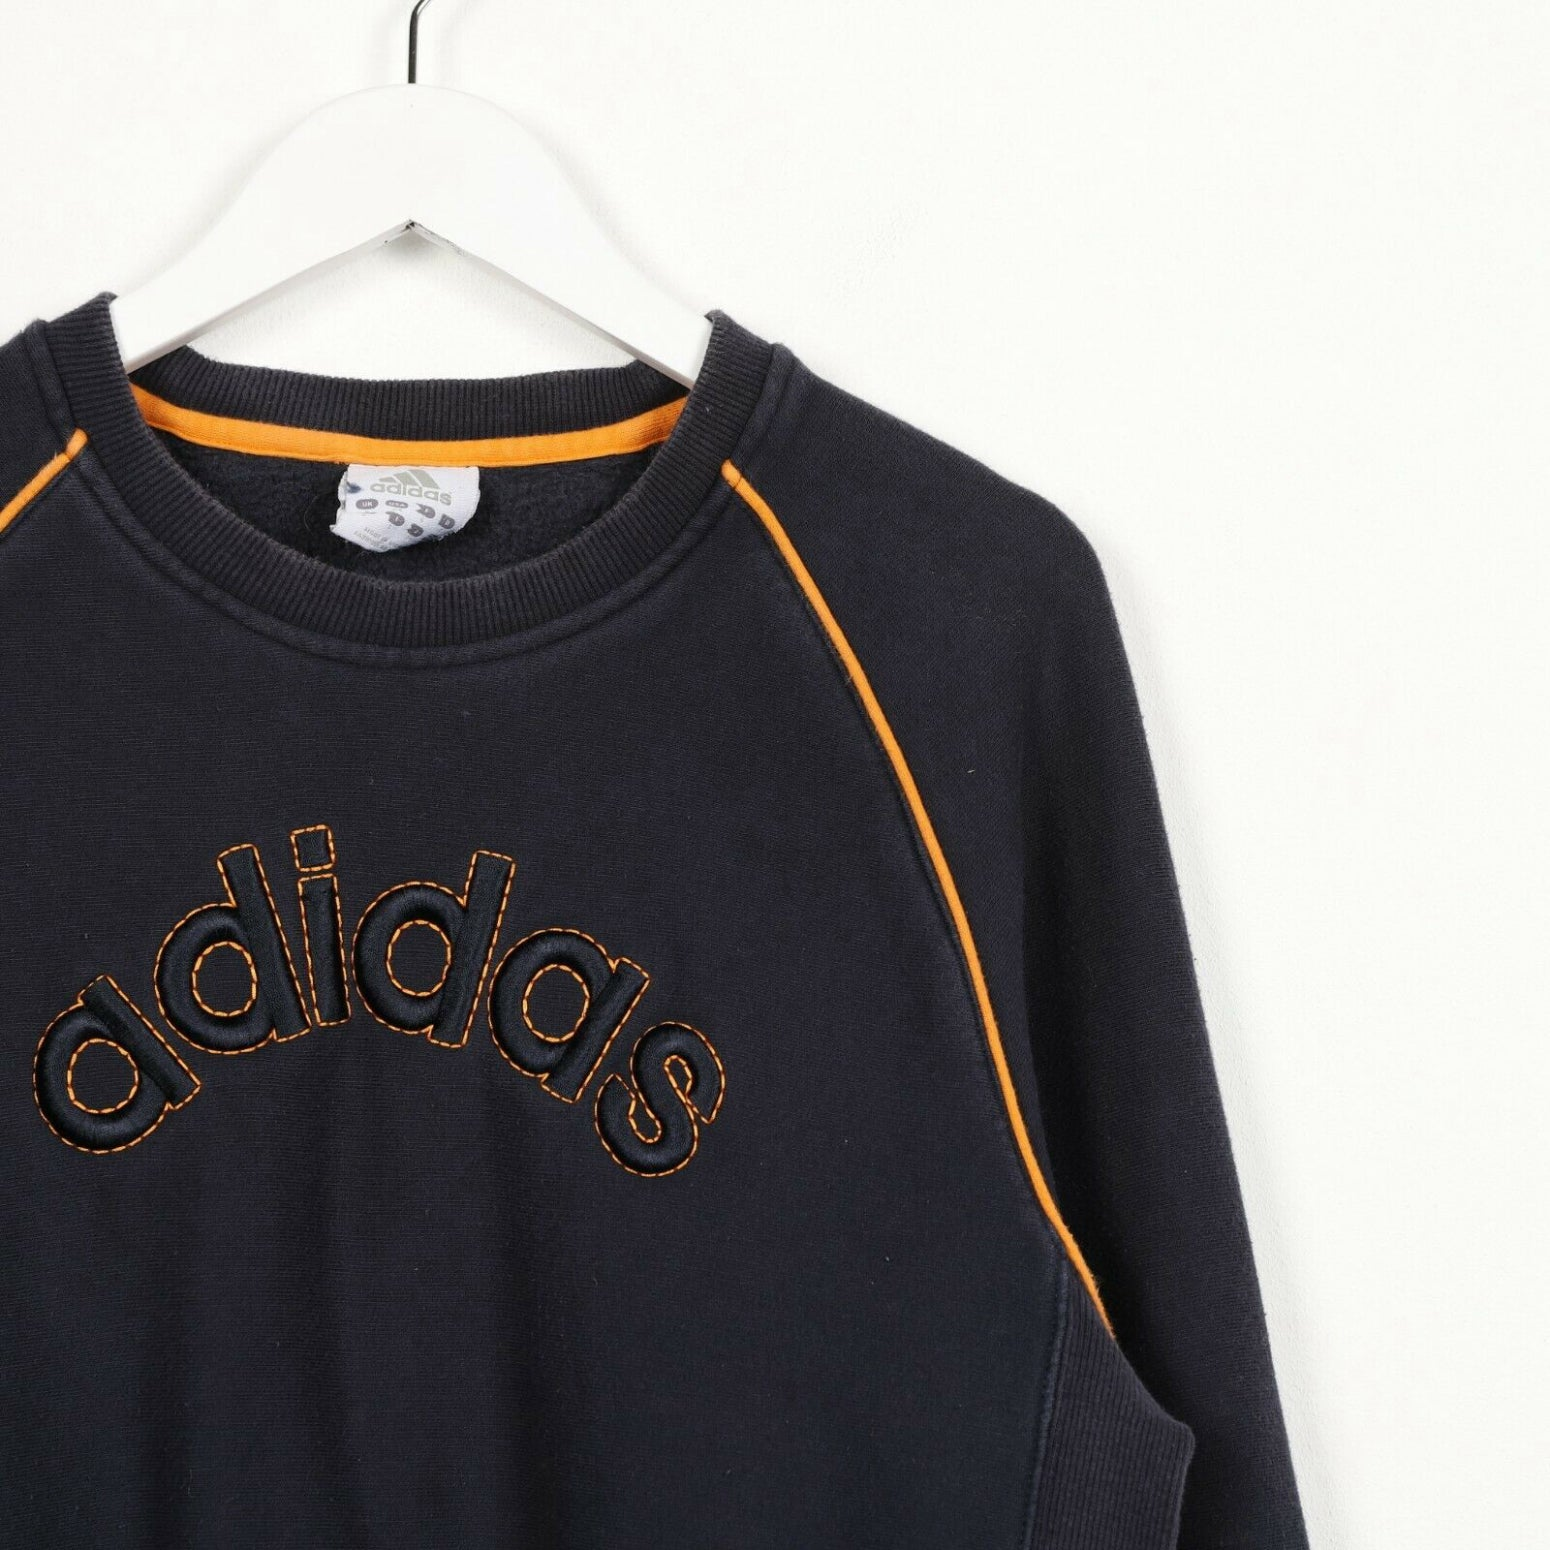 Vintage ADIDAS Big Logo Sweatshirt Jumper Blue Orange | Small S